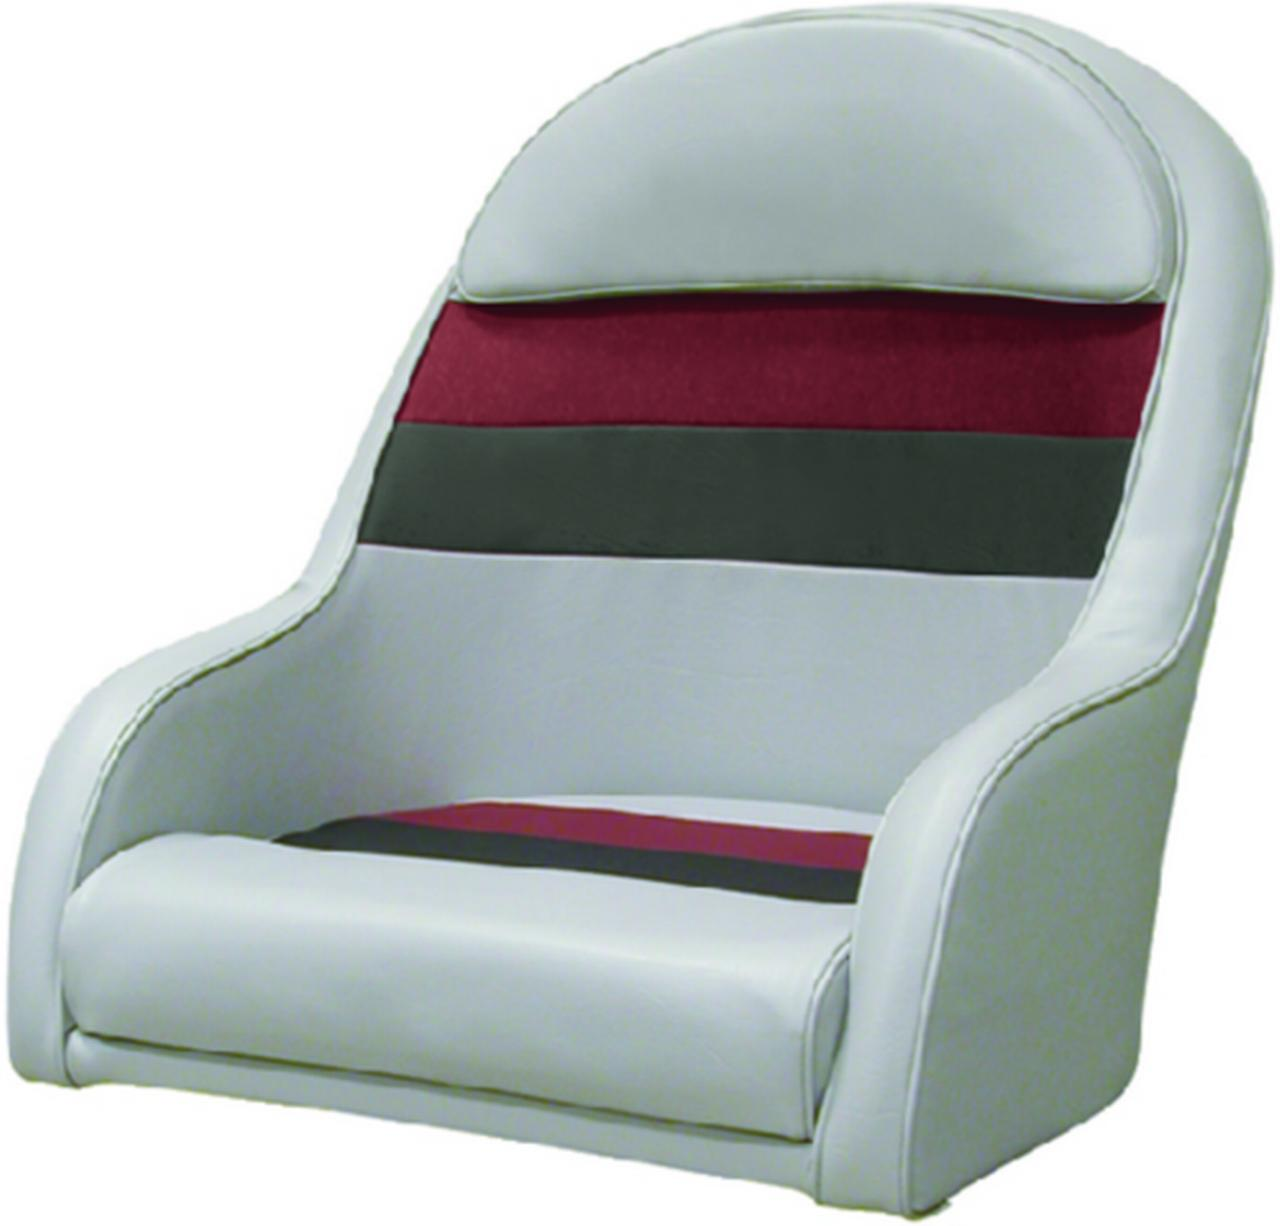 Wise Seat Deluxe Pontoon Furniture Captain Chair Light Gray Red